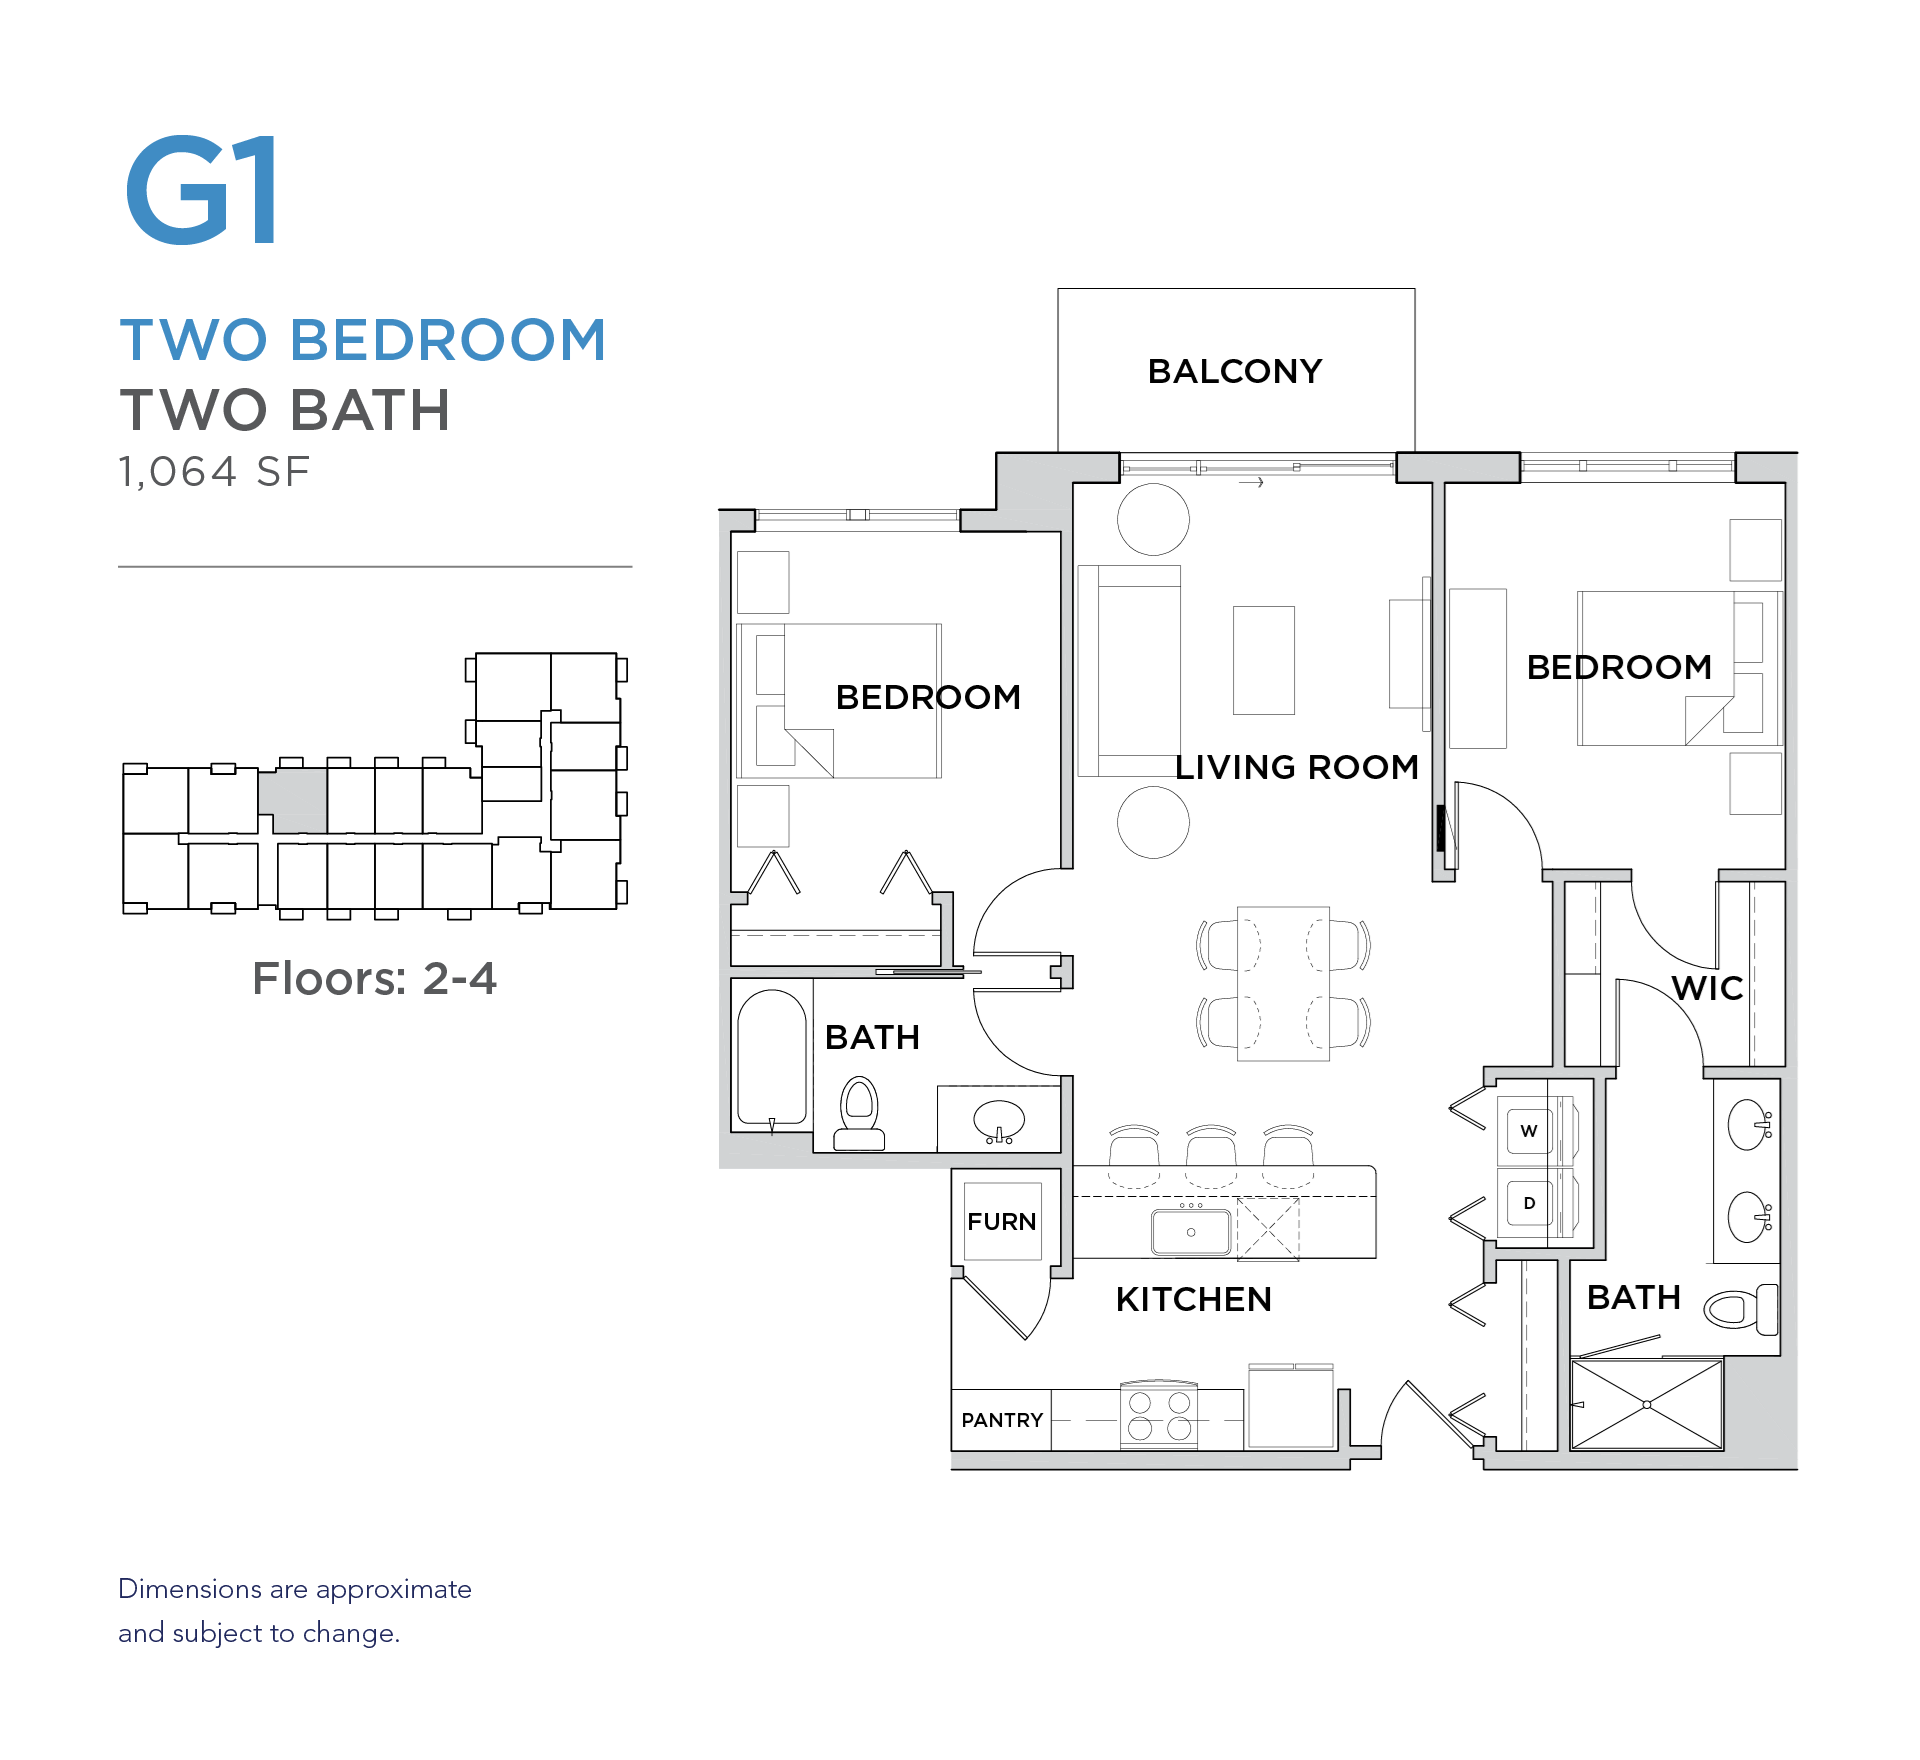 101 West 2 bed 2 bath 1,064 square foot apartment floor plan